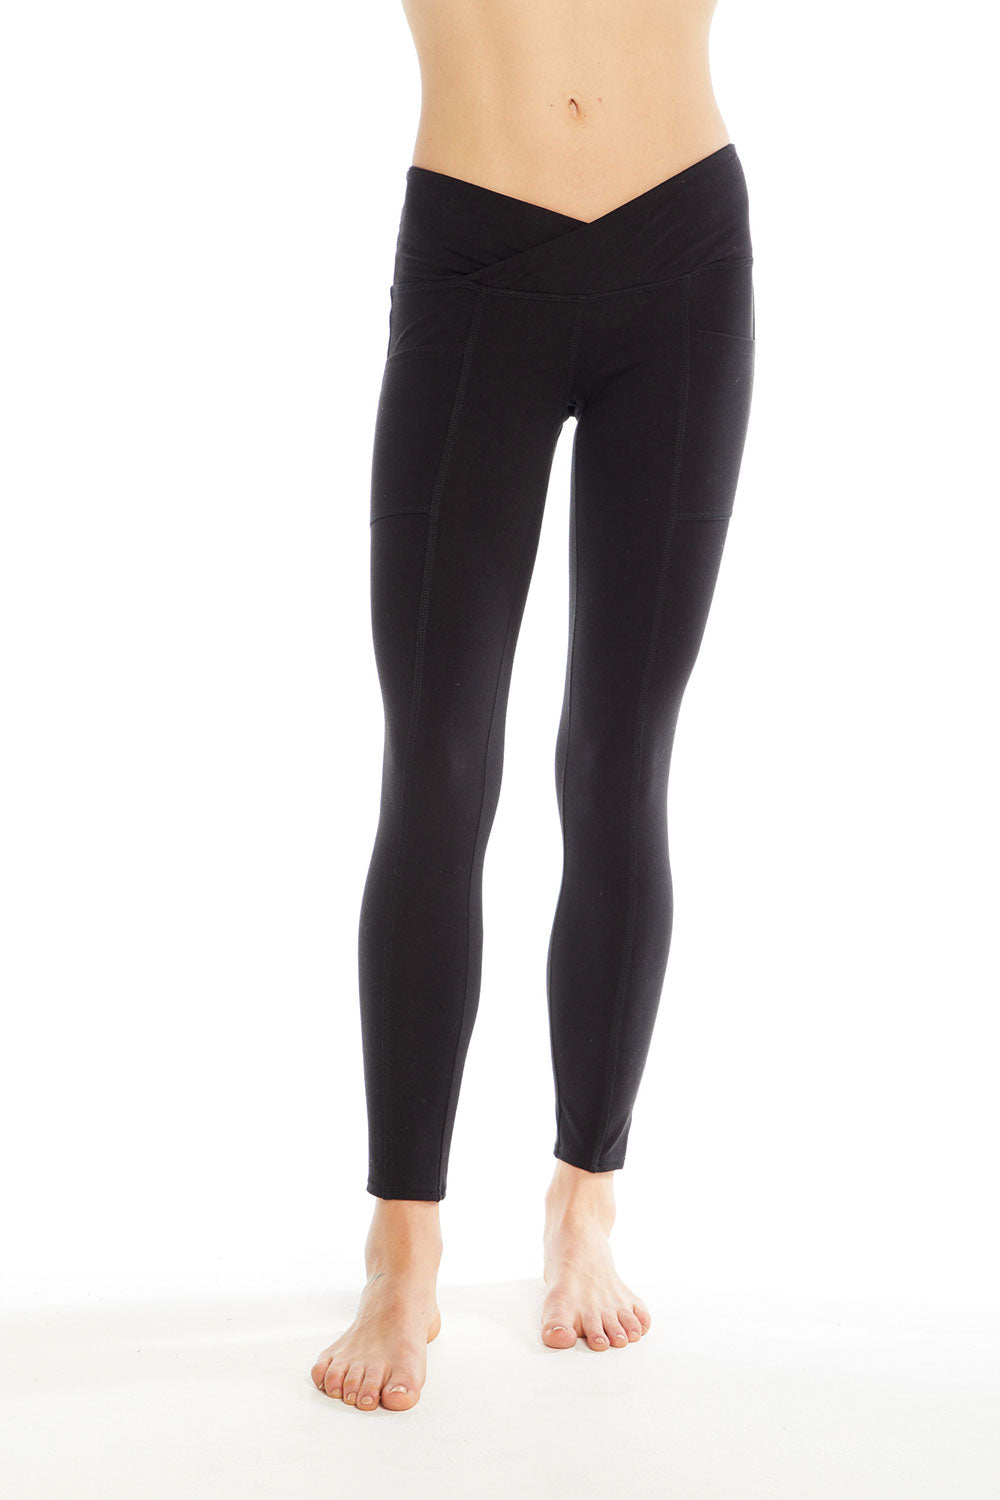 Quadrablend Sexy Overlap Waistband Legging with Pocket WOMENS chaserbrand4.myshopify.com